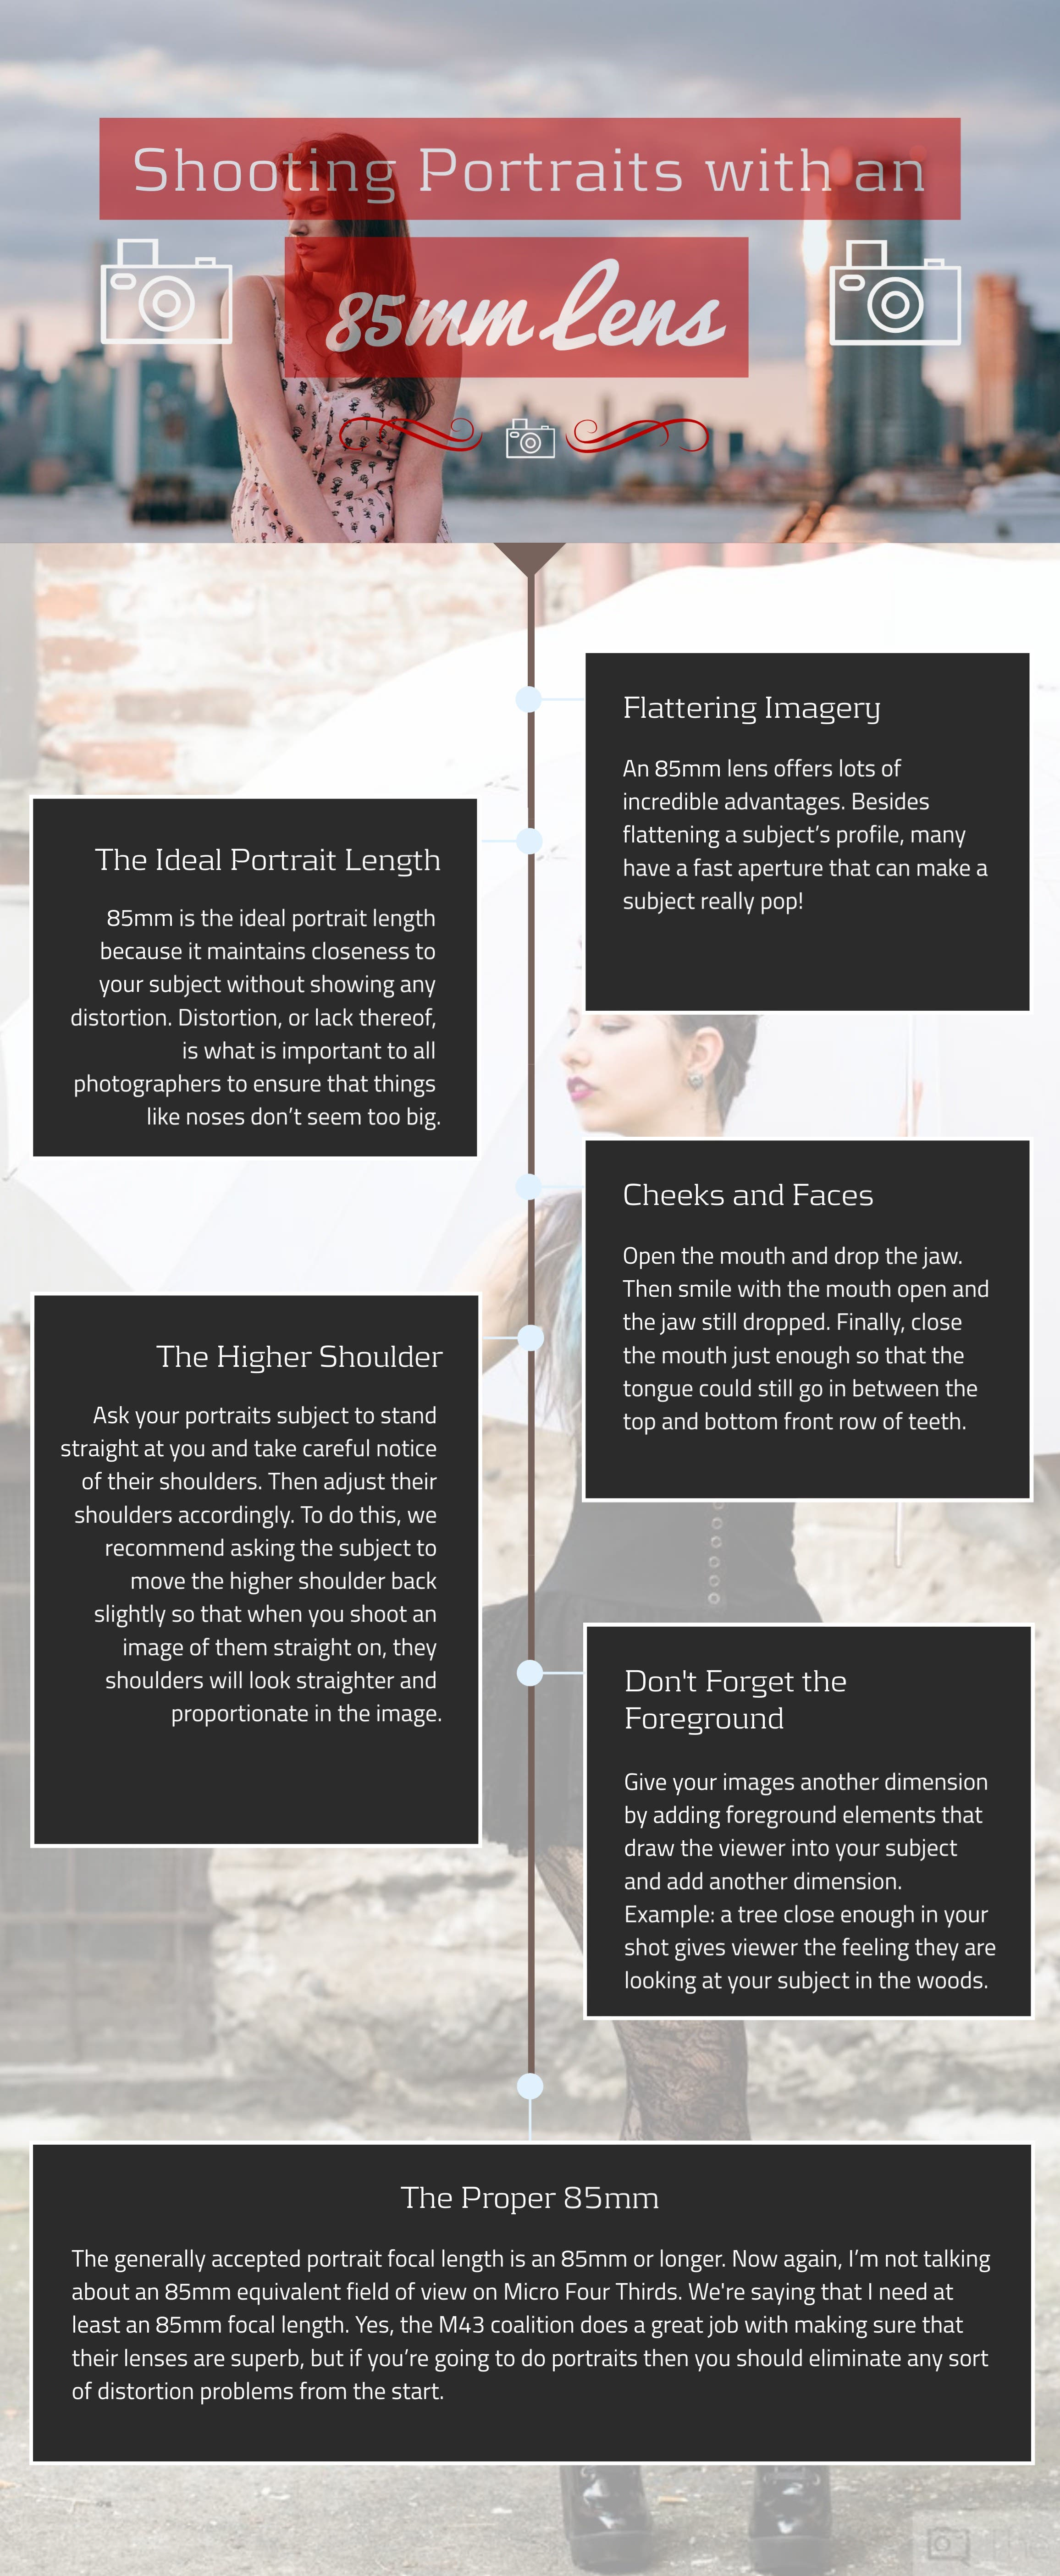 Infographic: Tips on Shooting Portraits with an 85mm Lens